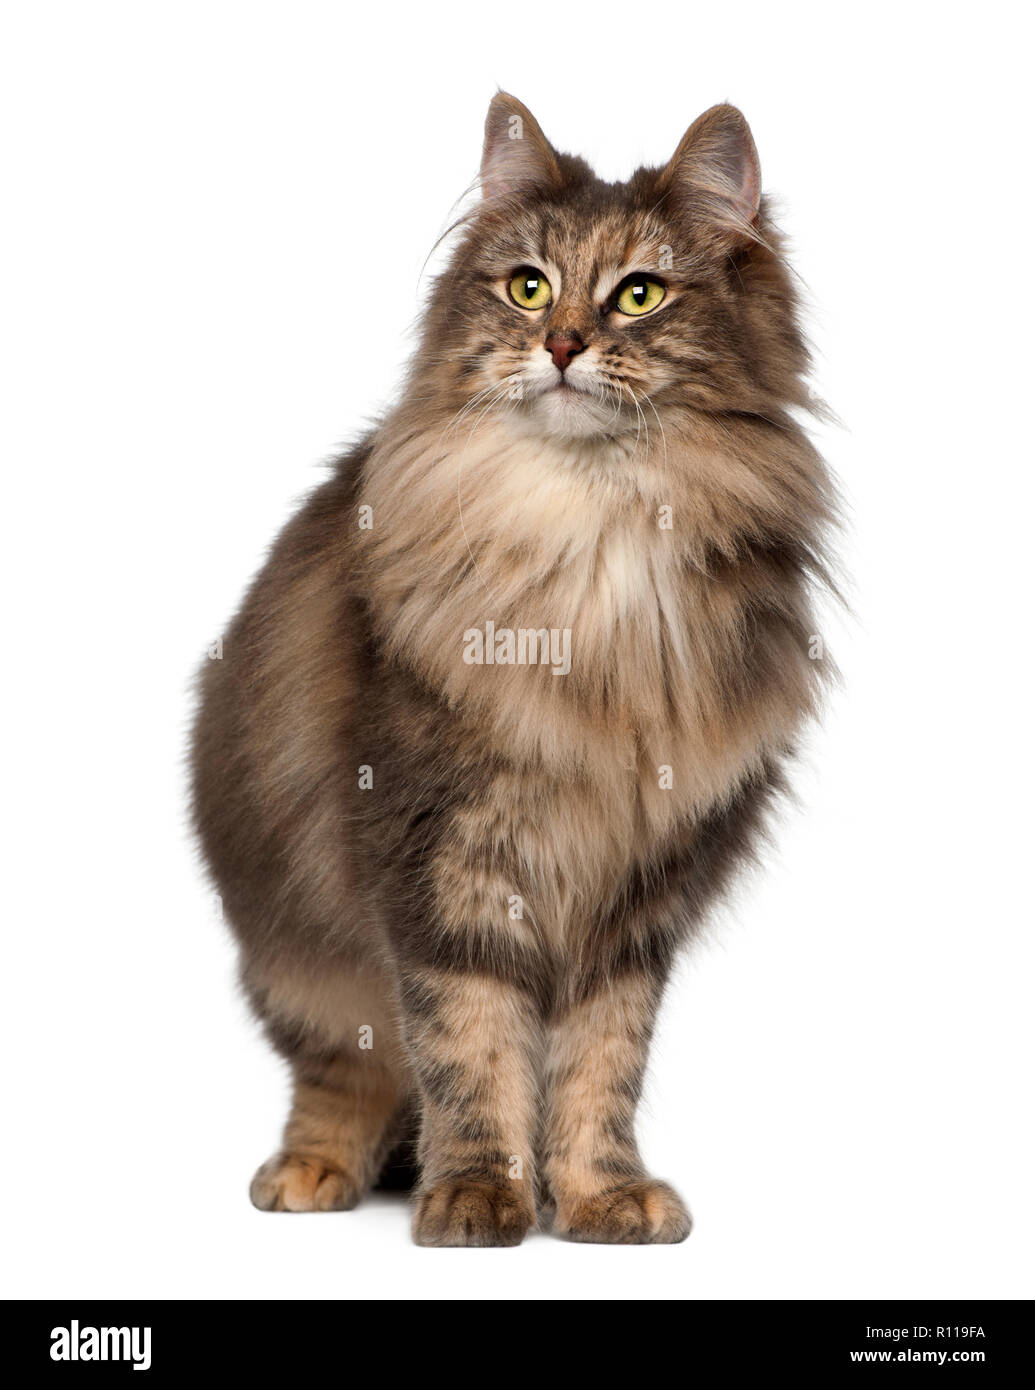 Norwegian Forest Cat, 1 and a half years old, standing against white background - Stock Image